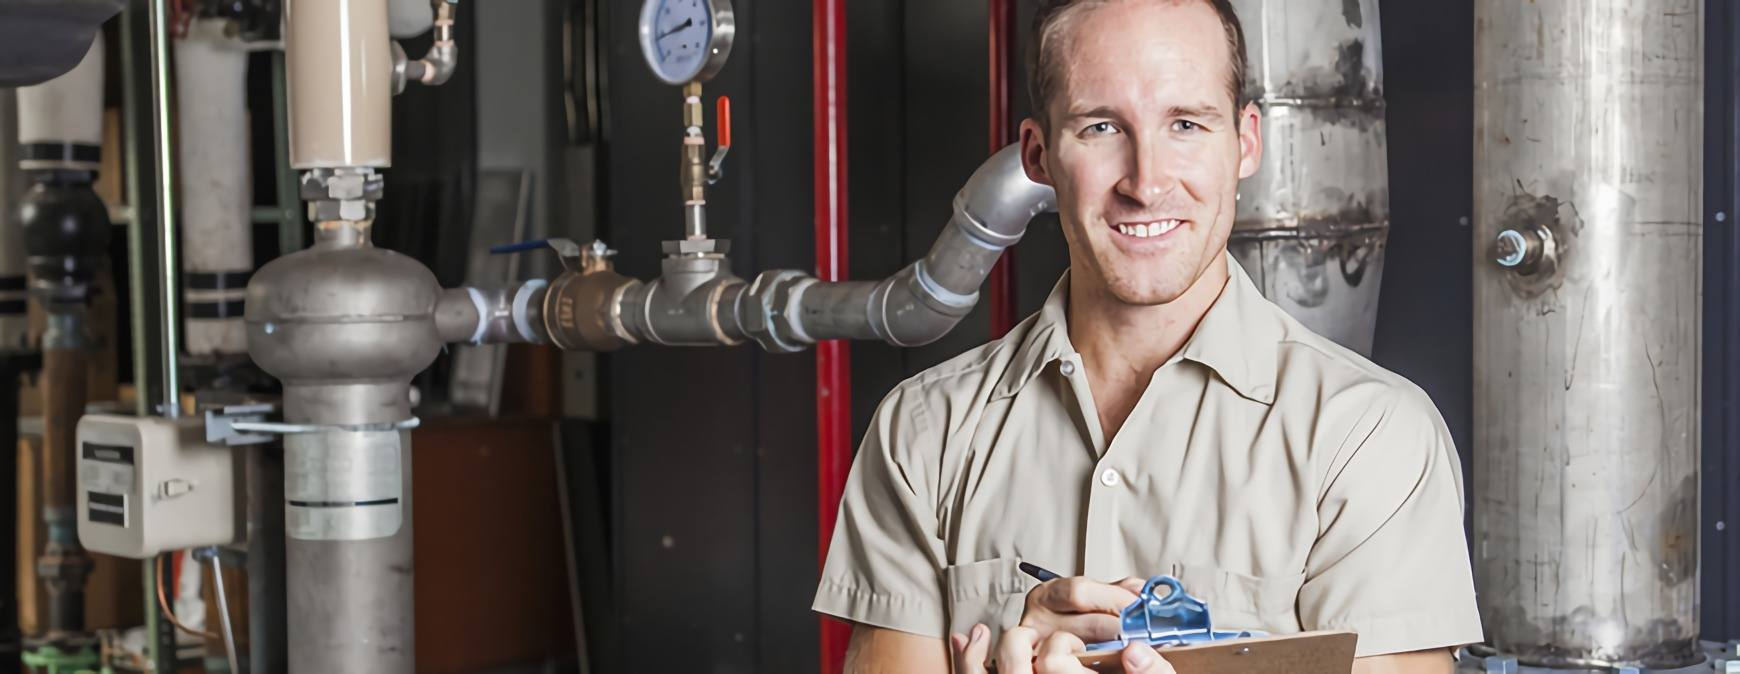 6 reasons to become an hvac technician